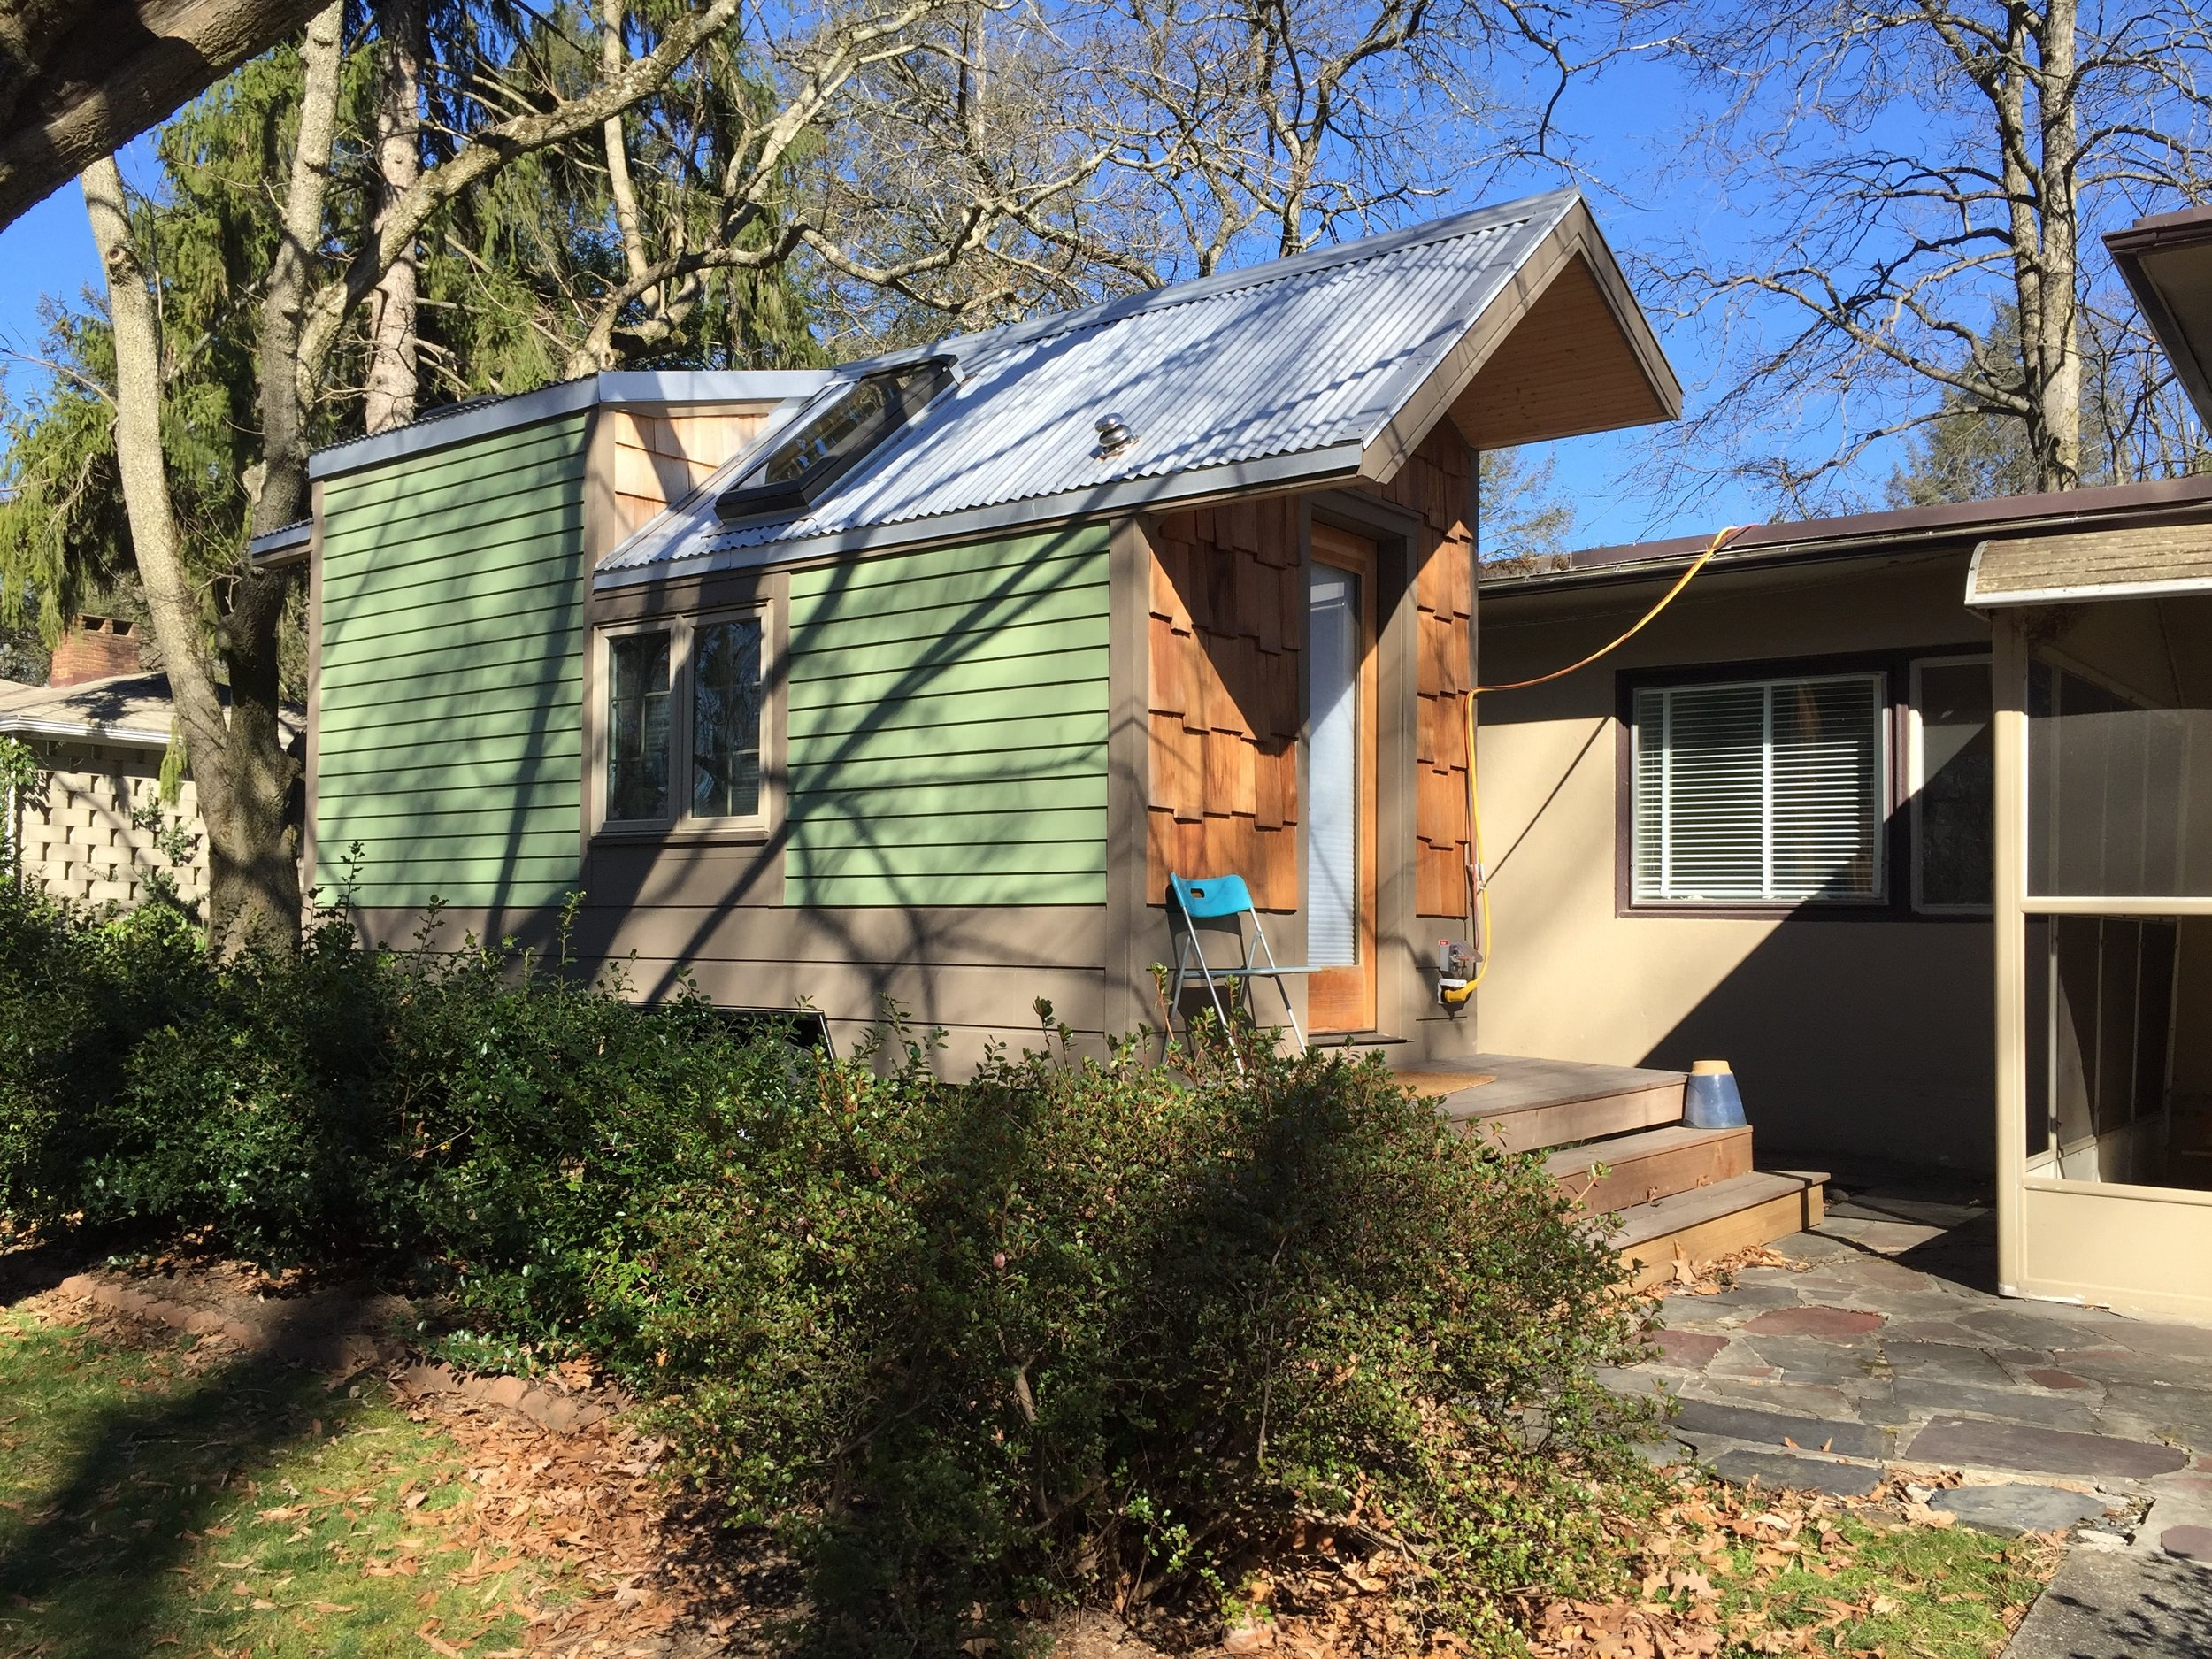 Our first tiny house currently resides in Swarthmore and is occupied by a sustainability fellow at Swarthmore College.